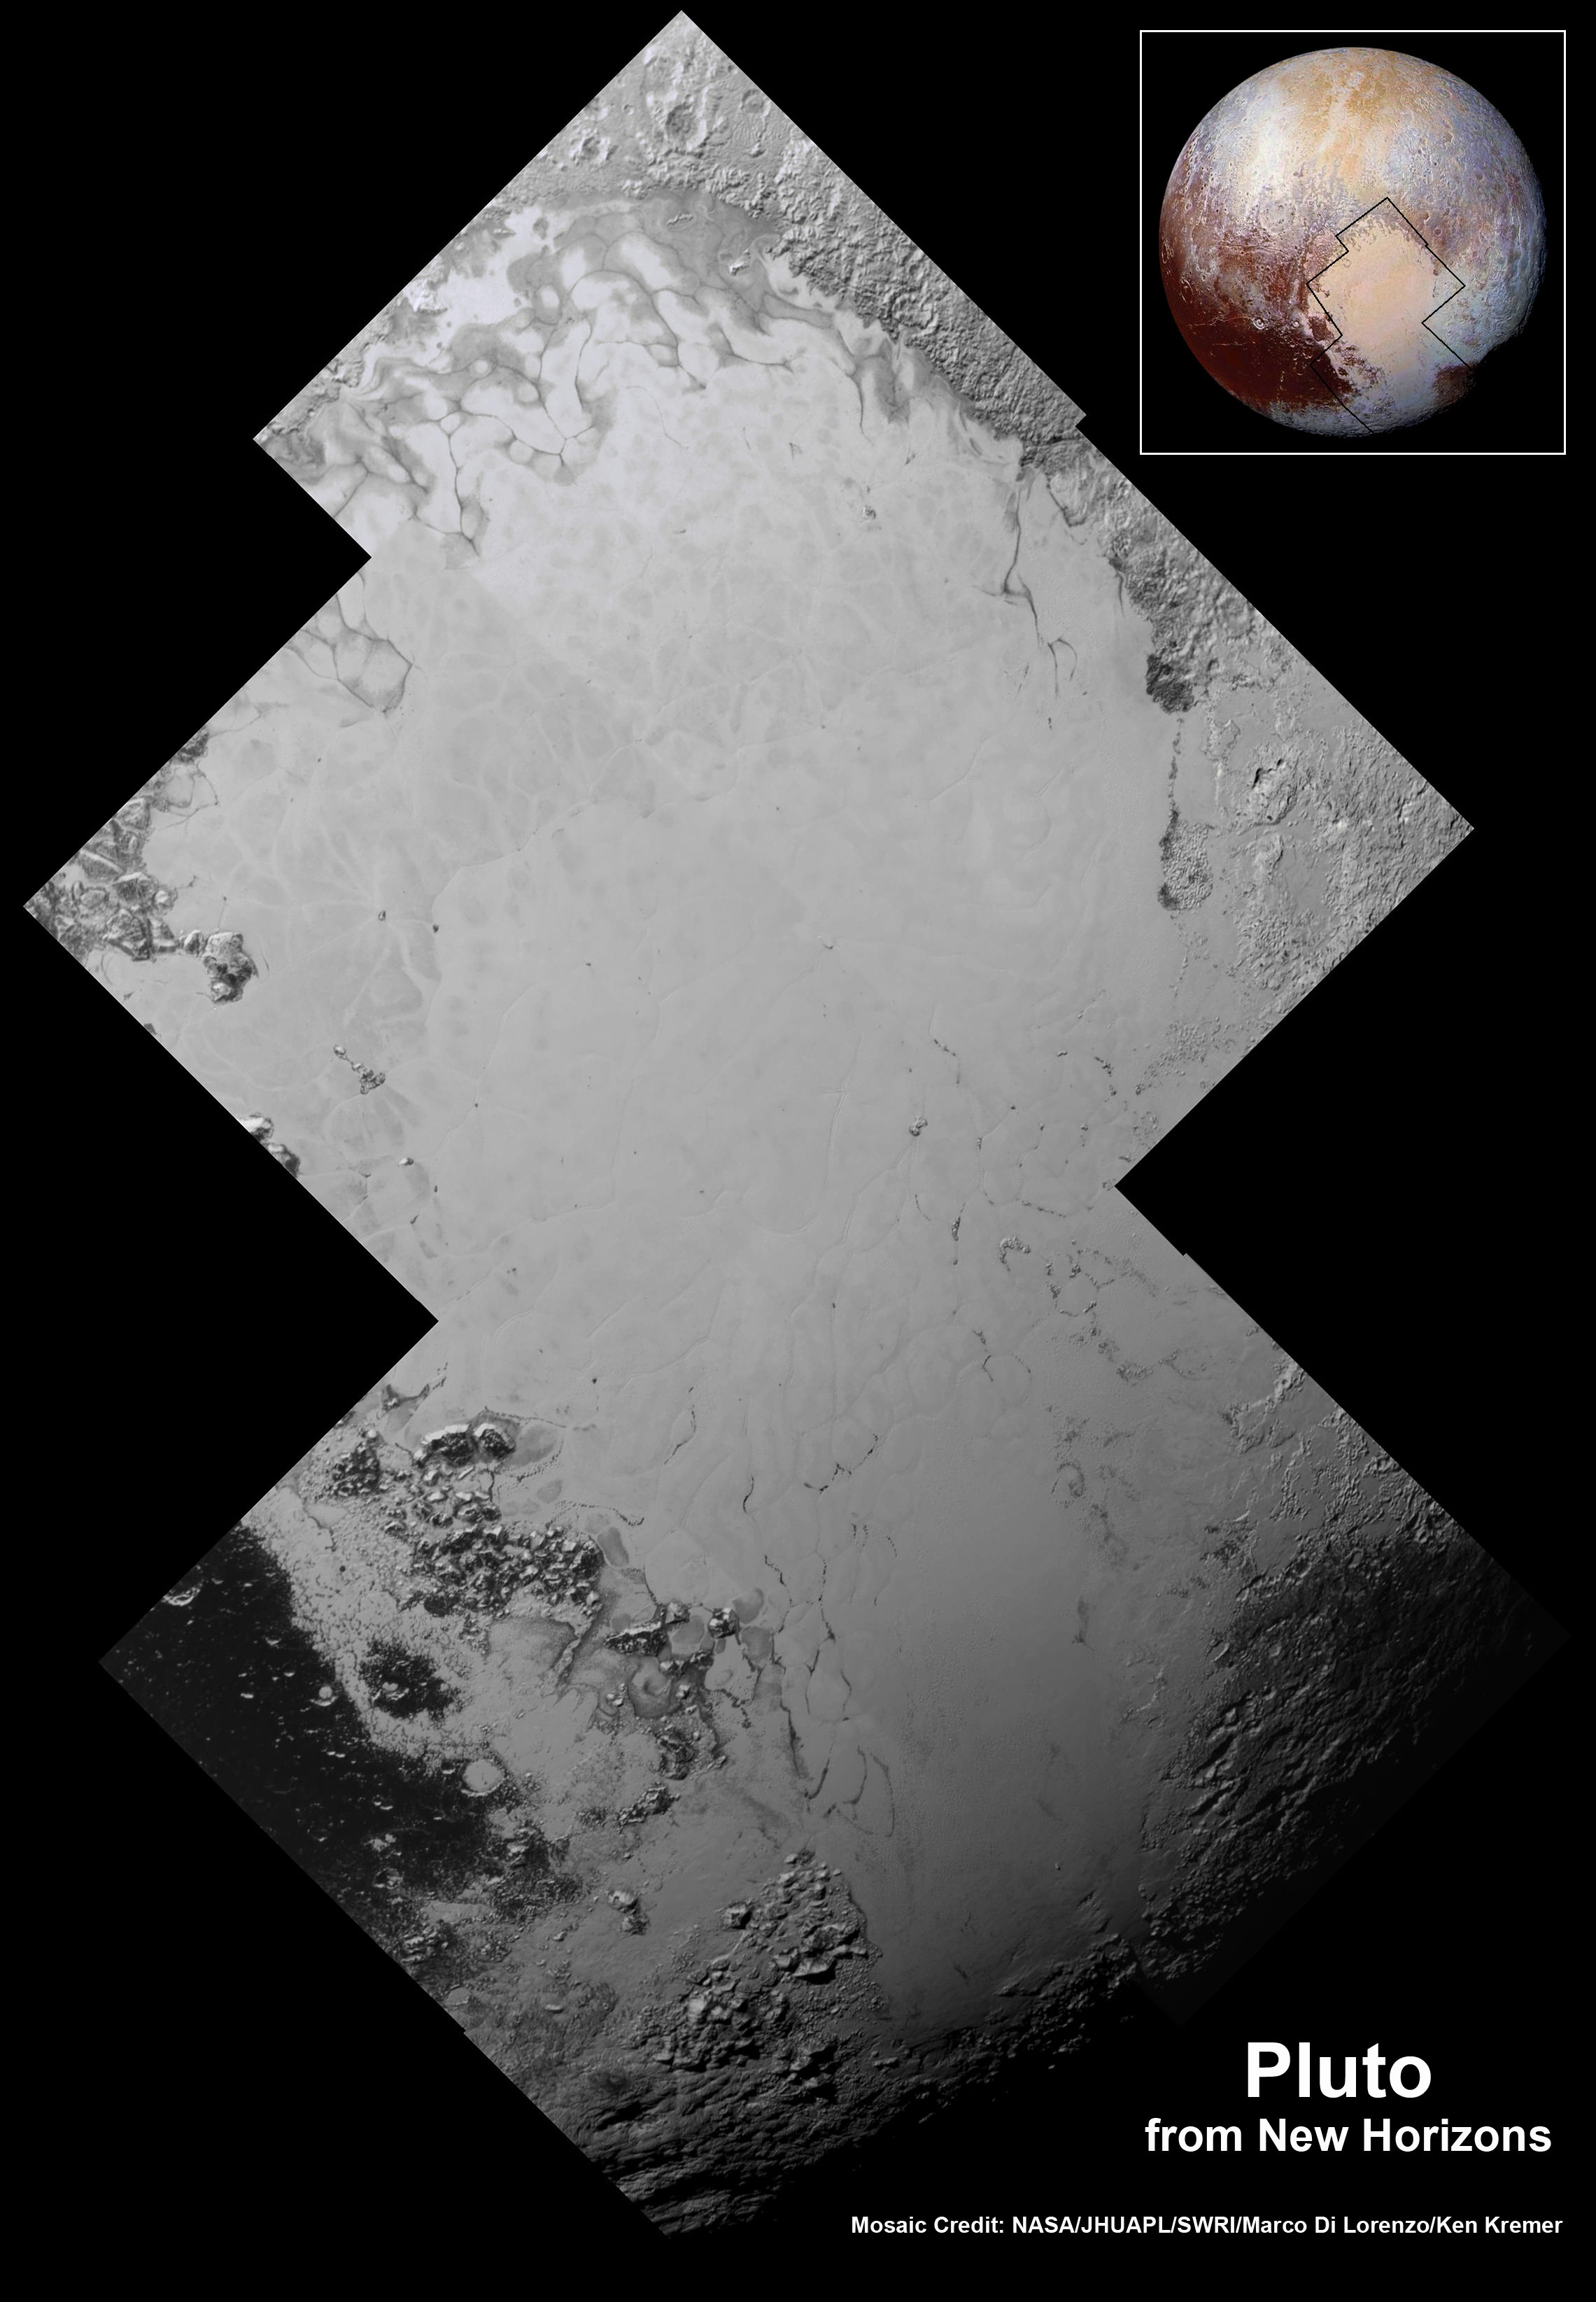 Highest resolution mosaic of 'Tombaugh Regio' shows the heart-shaped region on Pluto focusing on ice flows and plains of 'Sputnik Planum' at top and icy mountain ranges of 'Hillary Montes' and 'Norgay Montes' below.  This new mosaic combines the seven highest resolution images captured by NASA's New Horizons LORRI imager during history making closest approach flyby on July 14, 2015.  Inset at right shows global view of Pluto with location of mosaic and huge heart-shaped region in context.  Credit: NASA/JHUAPL/SWRI/Marco Di Lorenzo/Ken Kremer/kenkremer.com